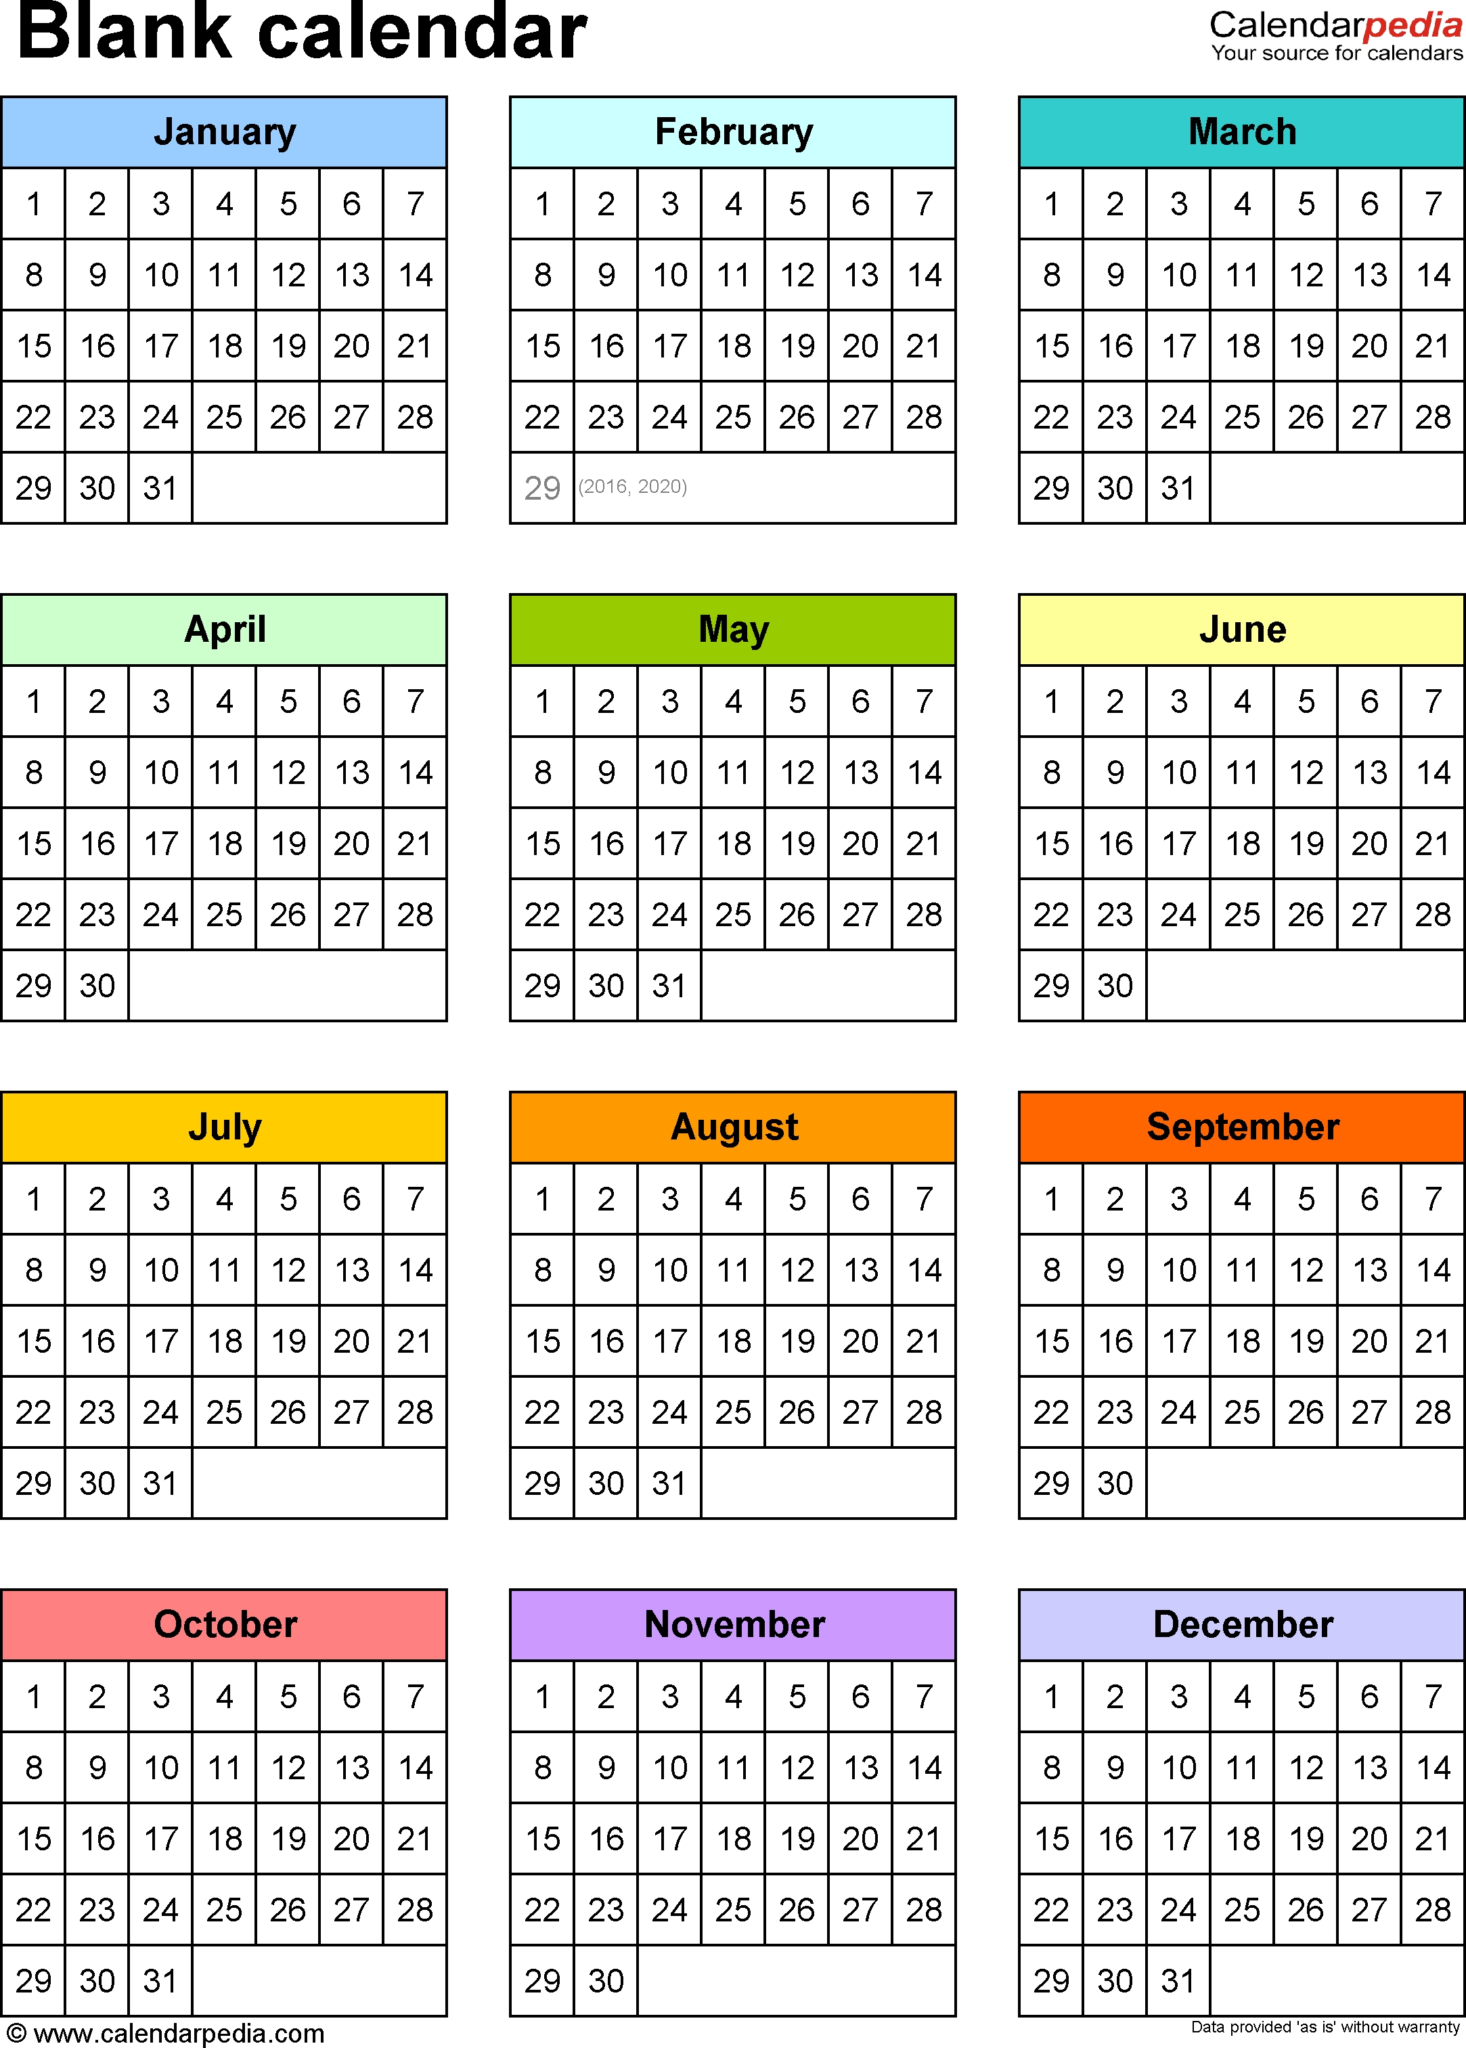 Blank Calendars – Free Printable Microsoft Word Templates